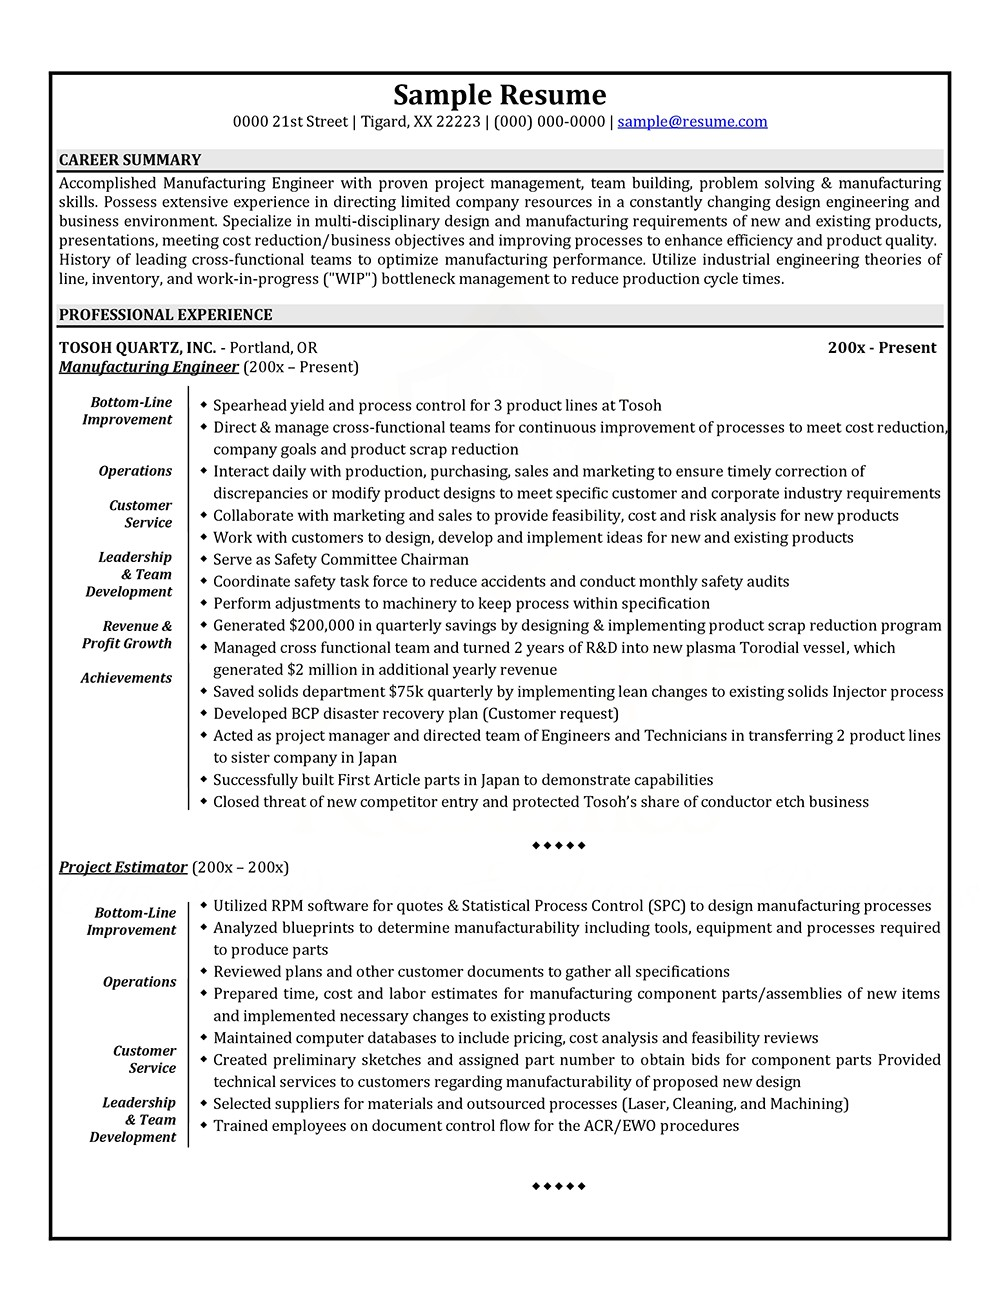 ivy league resume